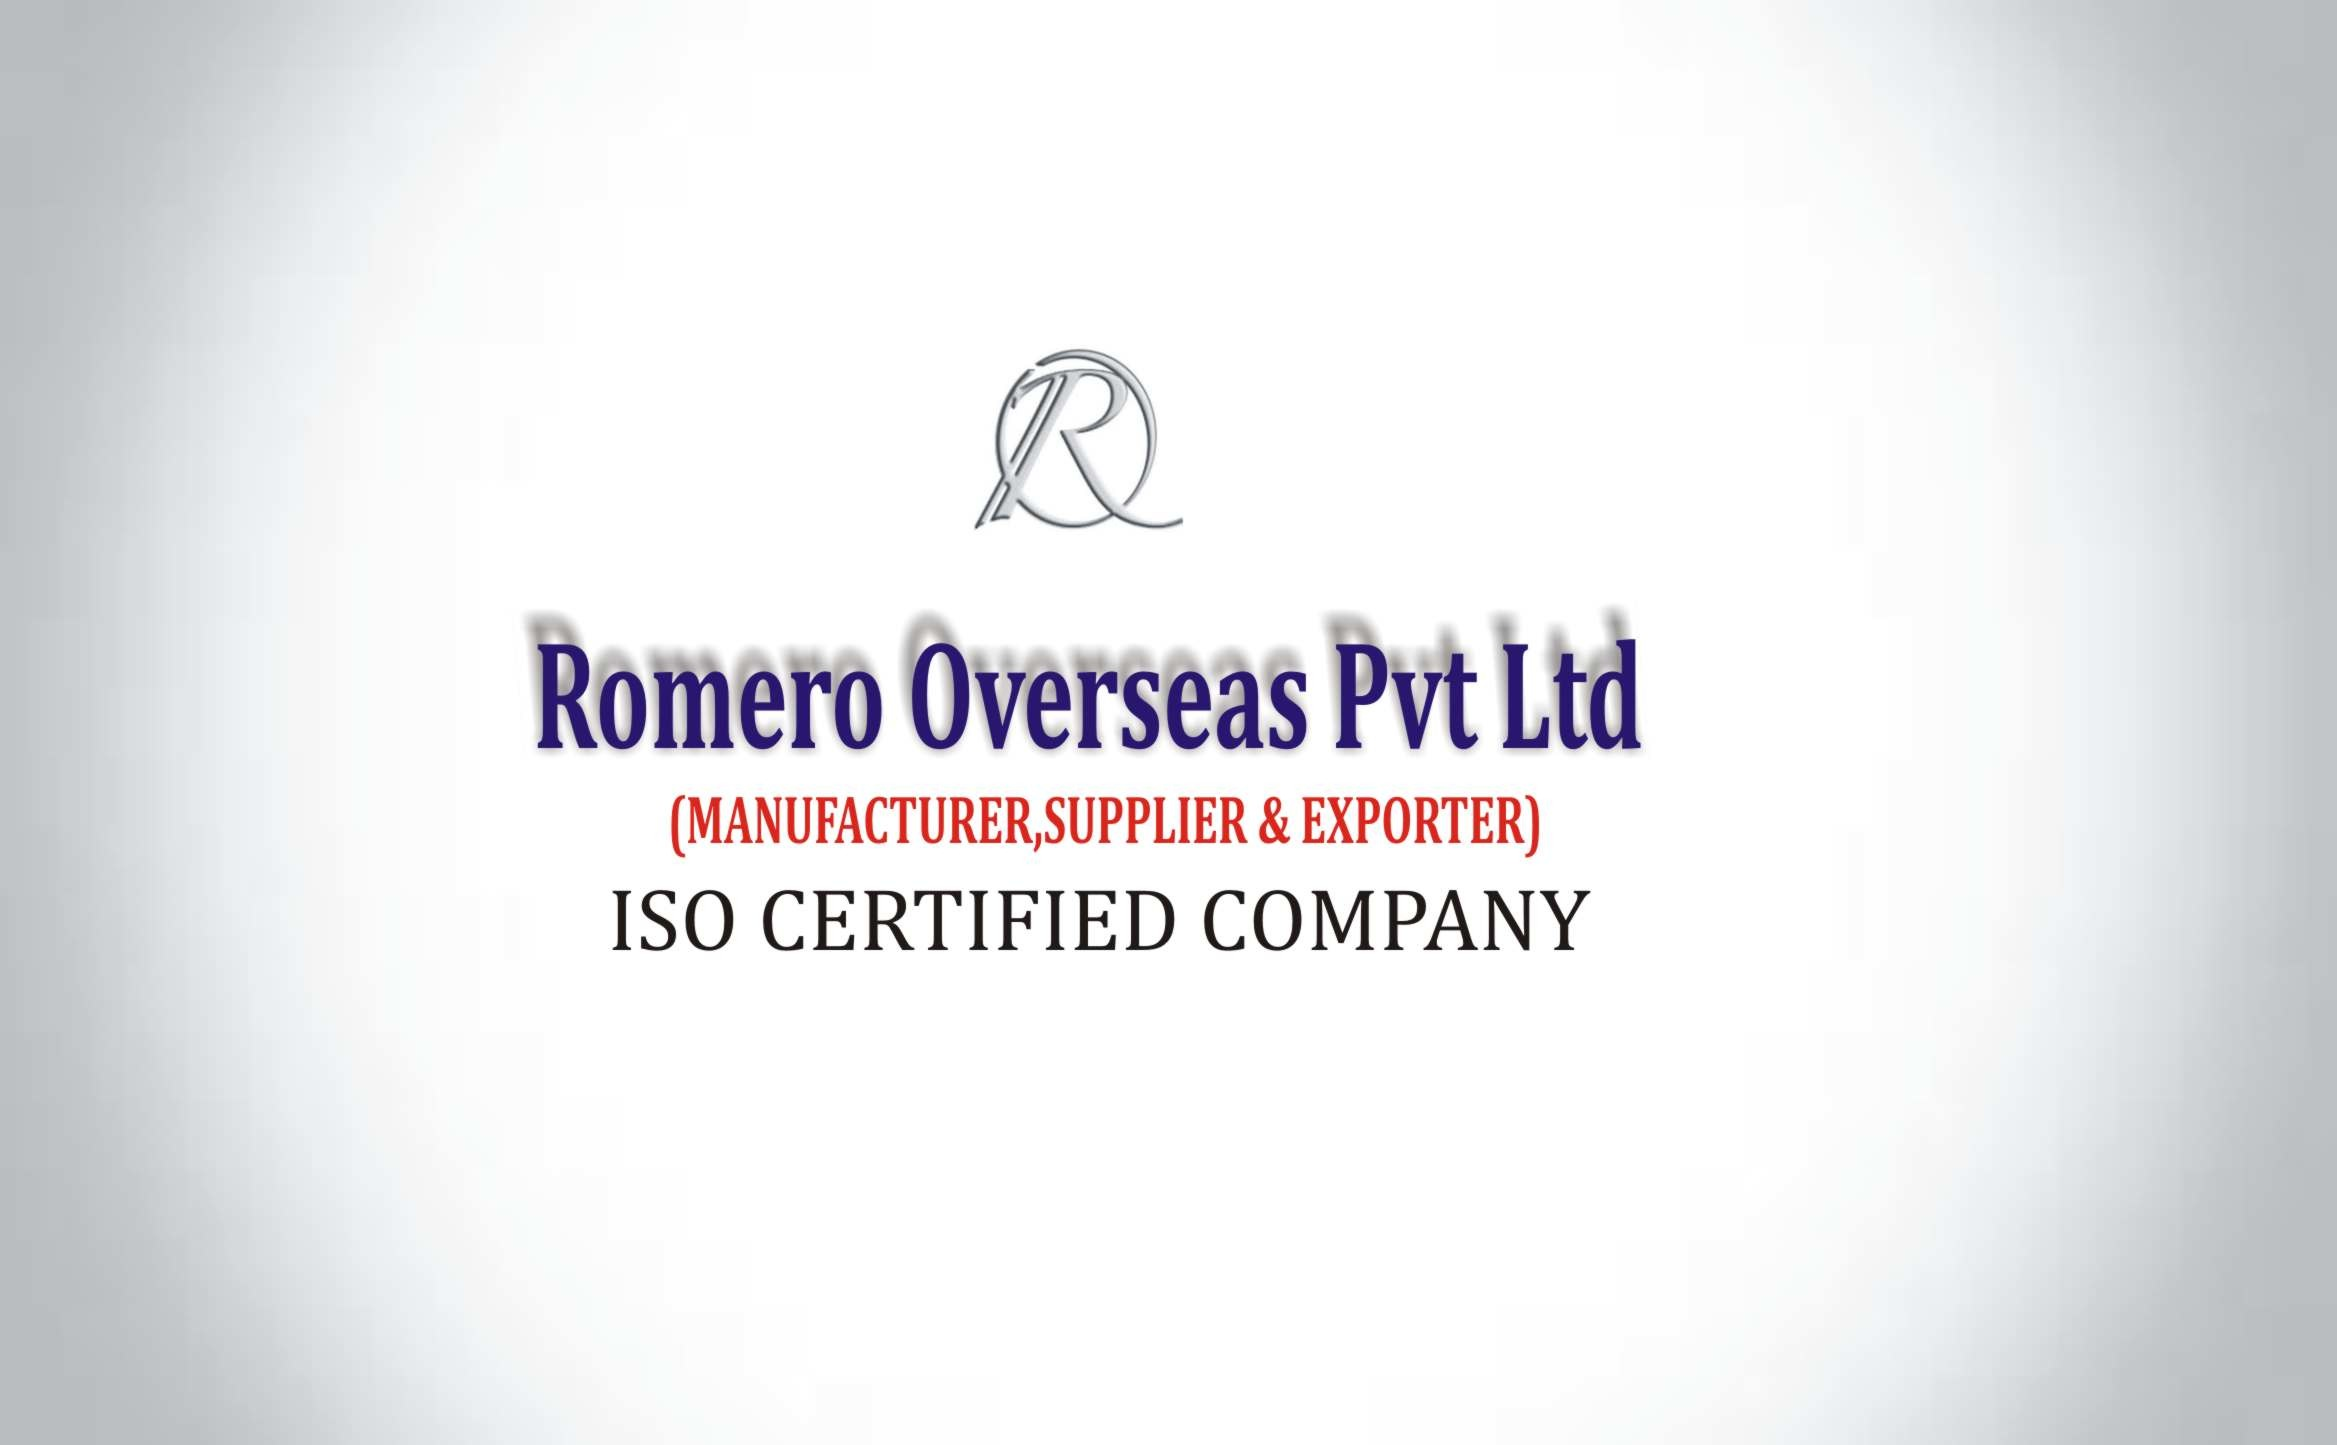 ROMERO OVERSEAS PVT LTD